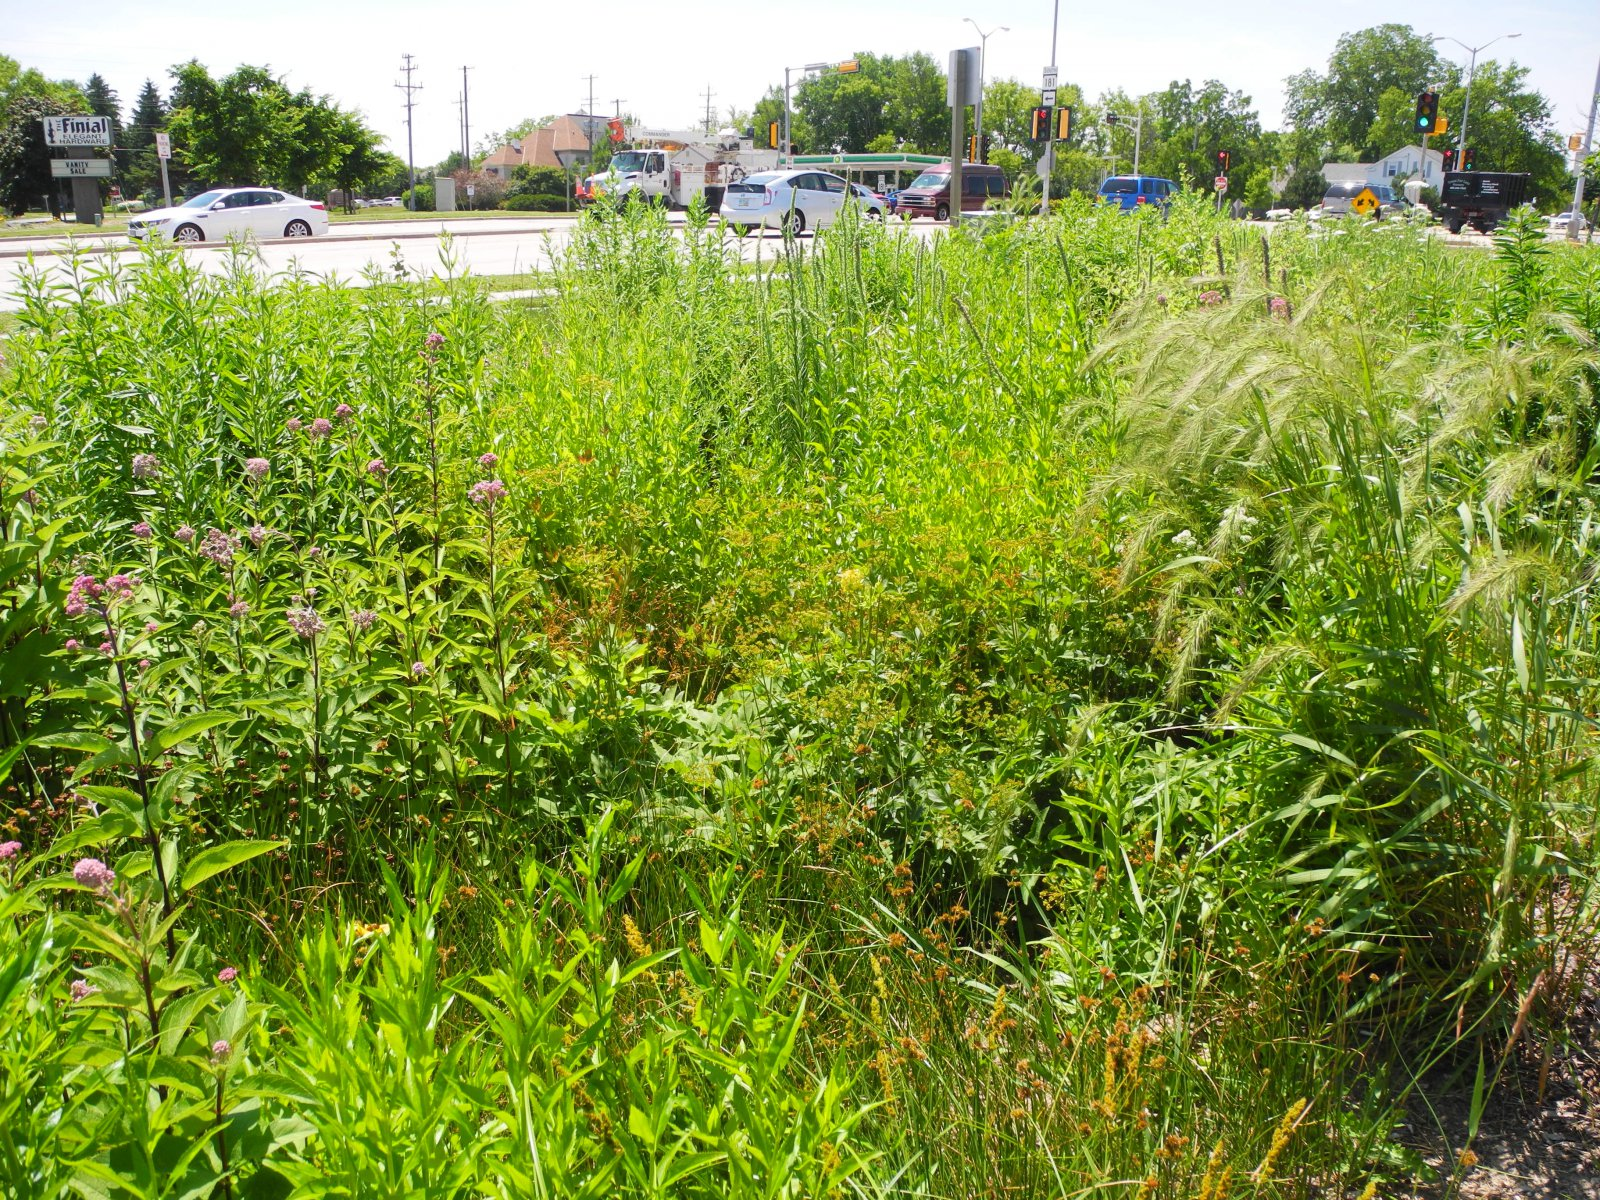 Rain garden at Outpost Natural Foods